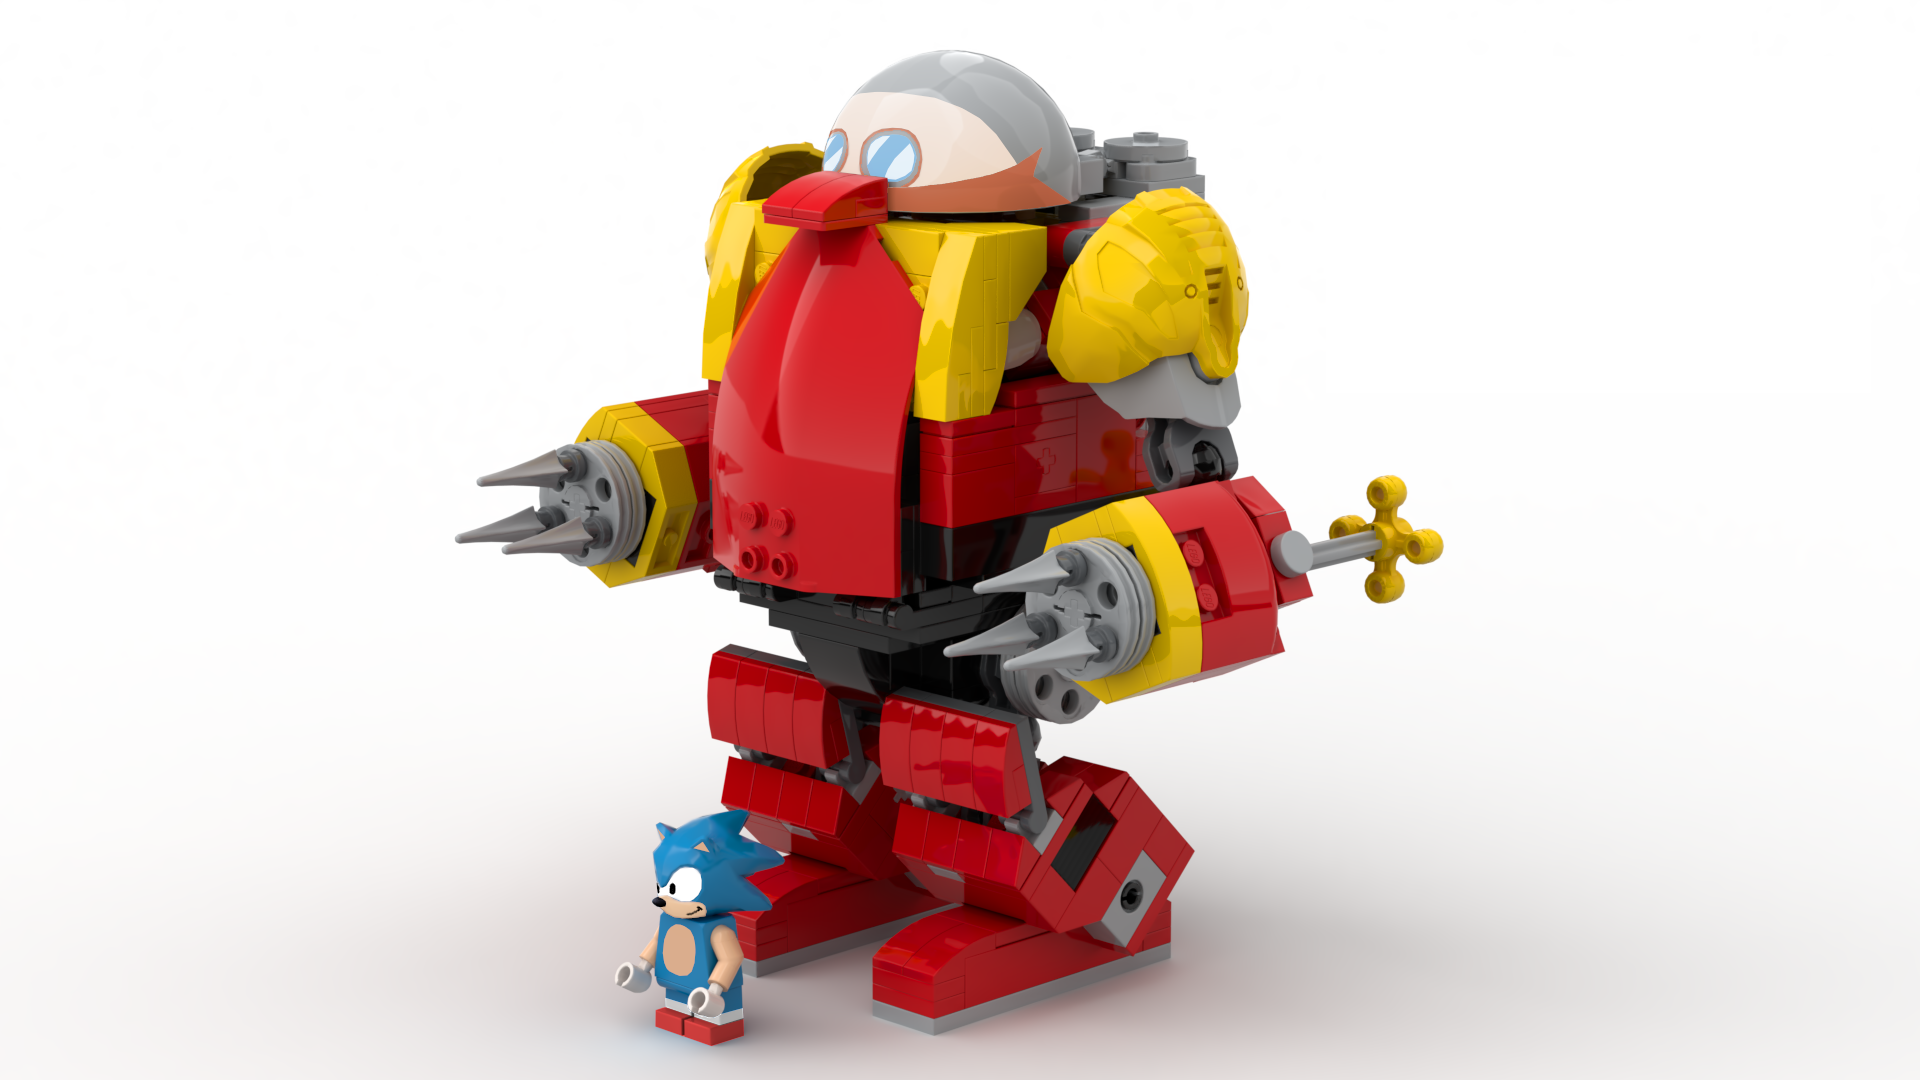 Pictures Of Lego Ideas Features A Proposed Sonic The Hedgehog Set 4 8